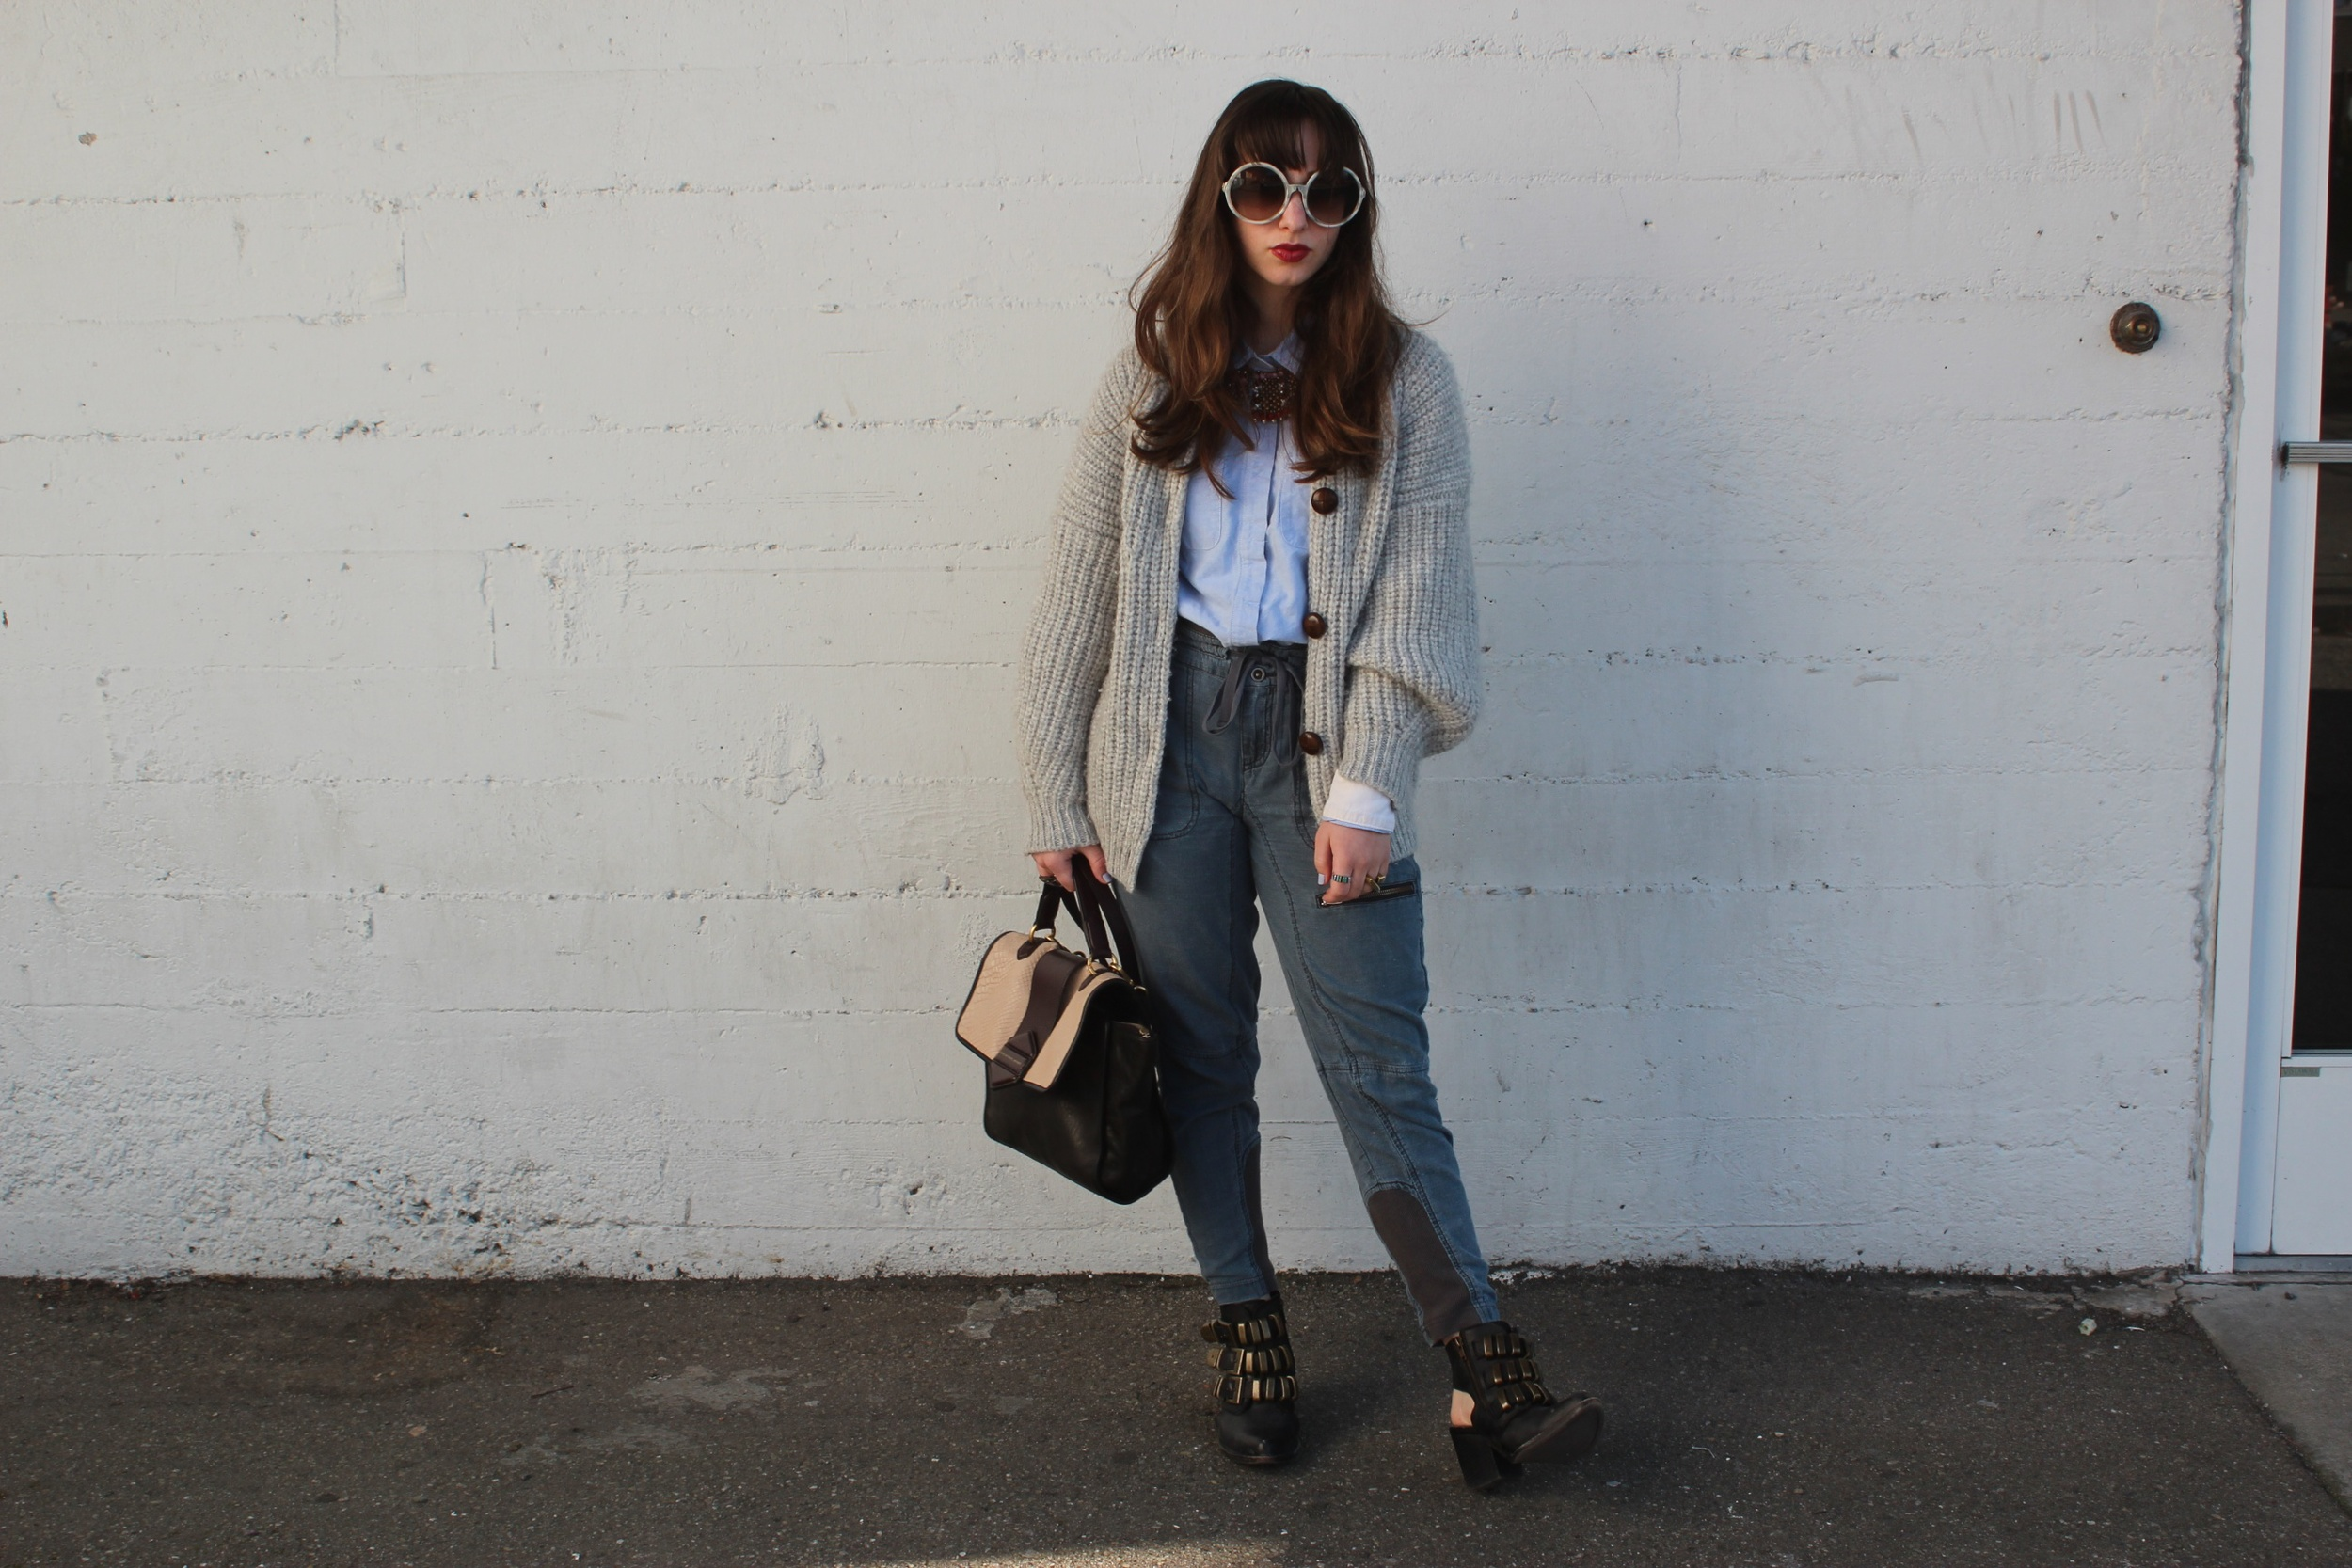 """Sweater: Étoile Isabel Marant, Chambray: H&M, Pants: Free People, Tripoli Boots: Jeffrey Campbell, Statement Necklace: Anthropologie, Flipping Out Bag: Marc by Marc Jacobs, Sunglasses: Tom Ford """"Carrie"""""""